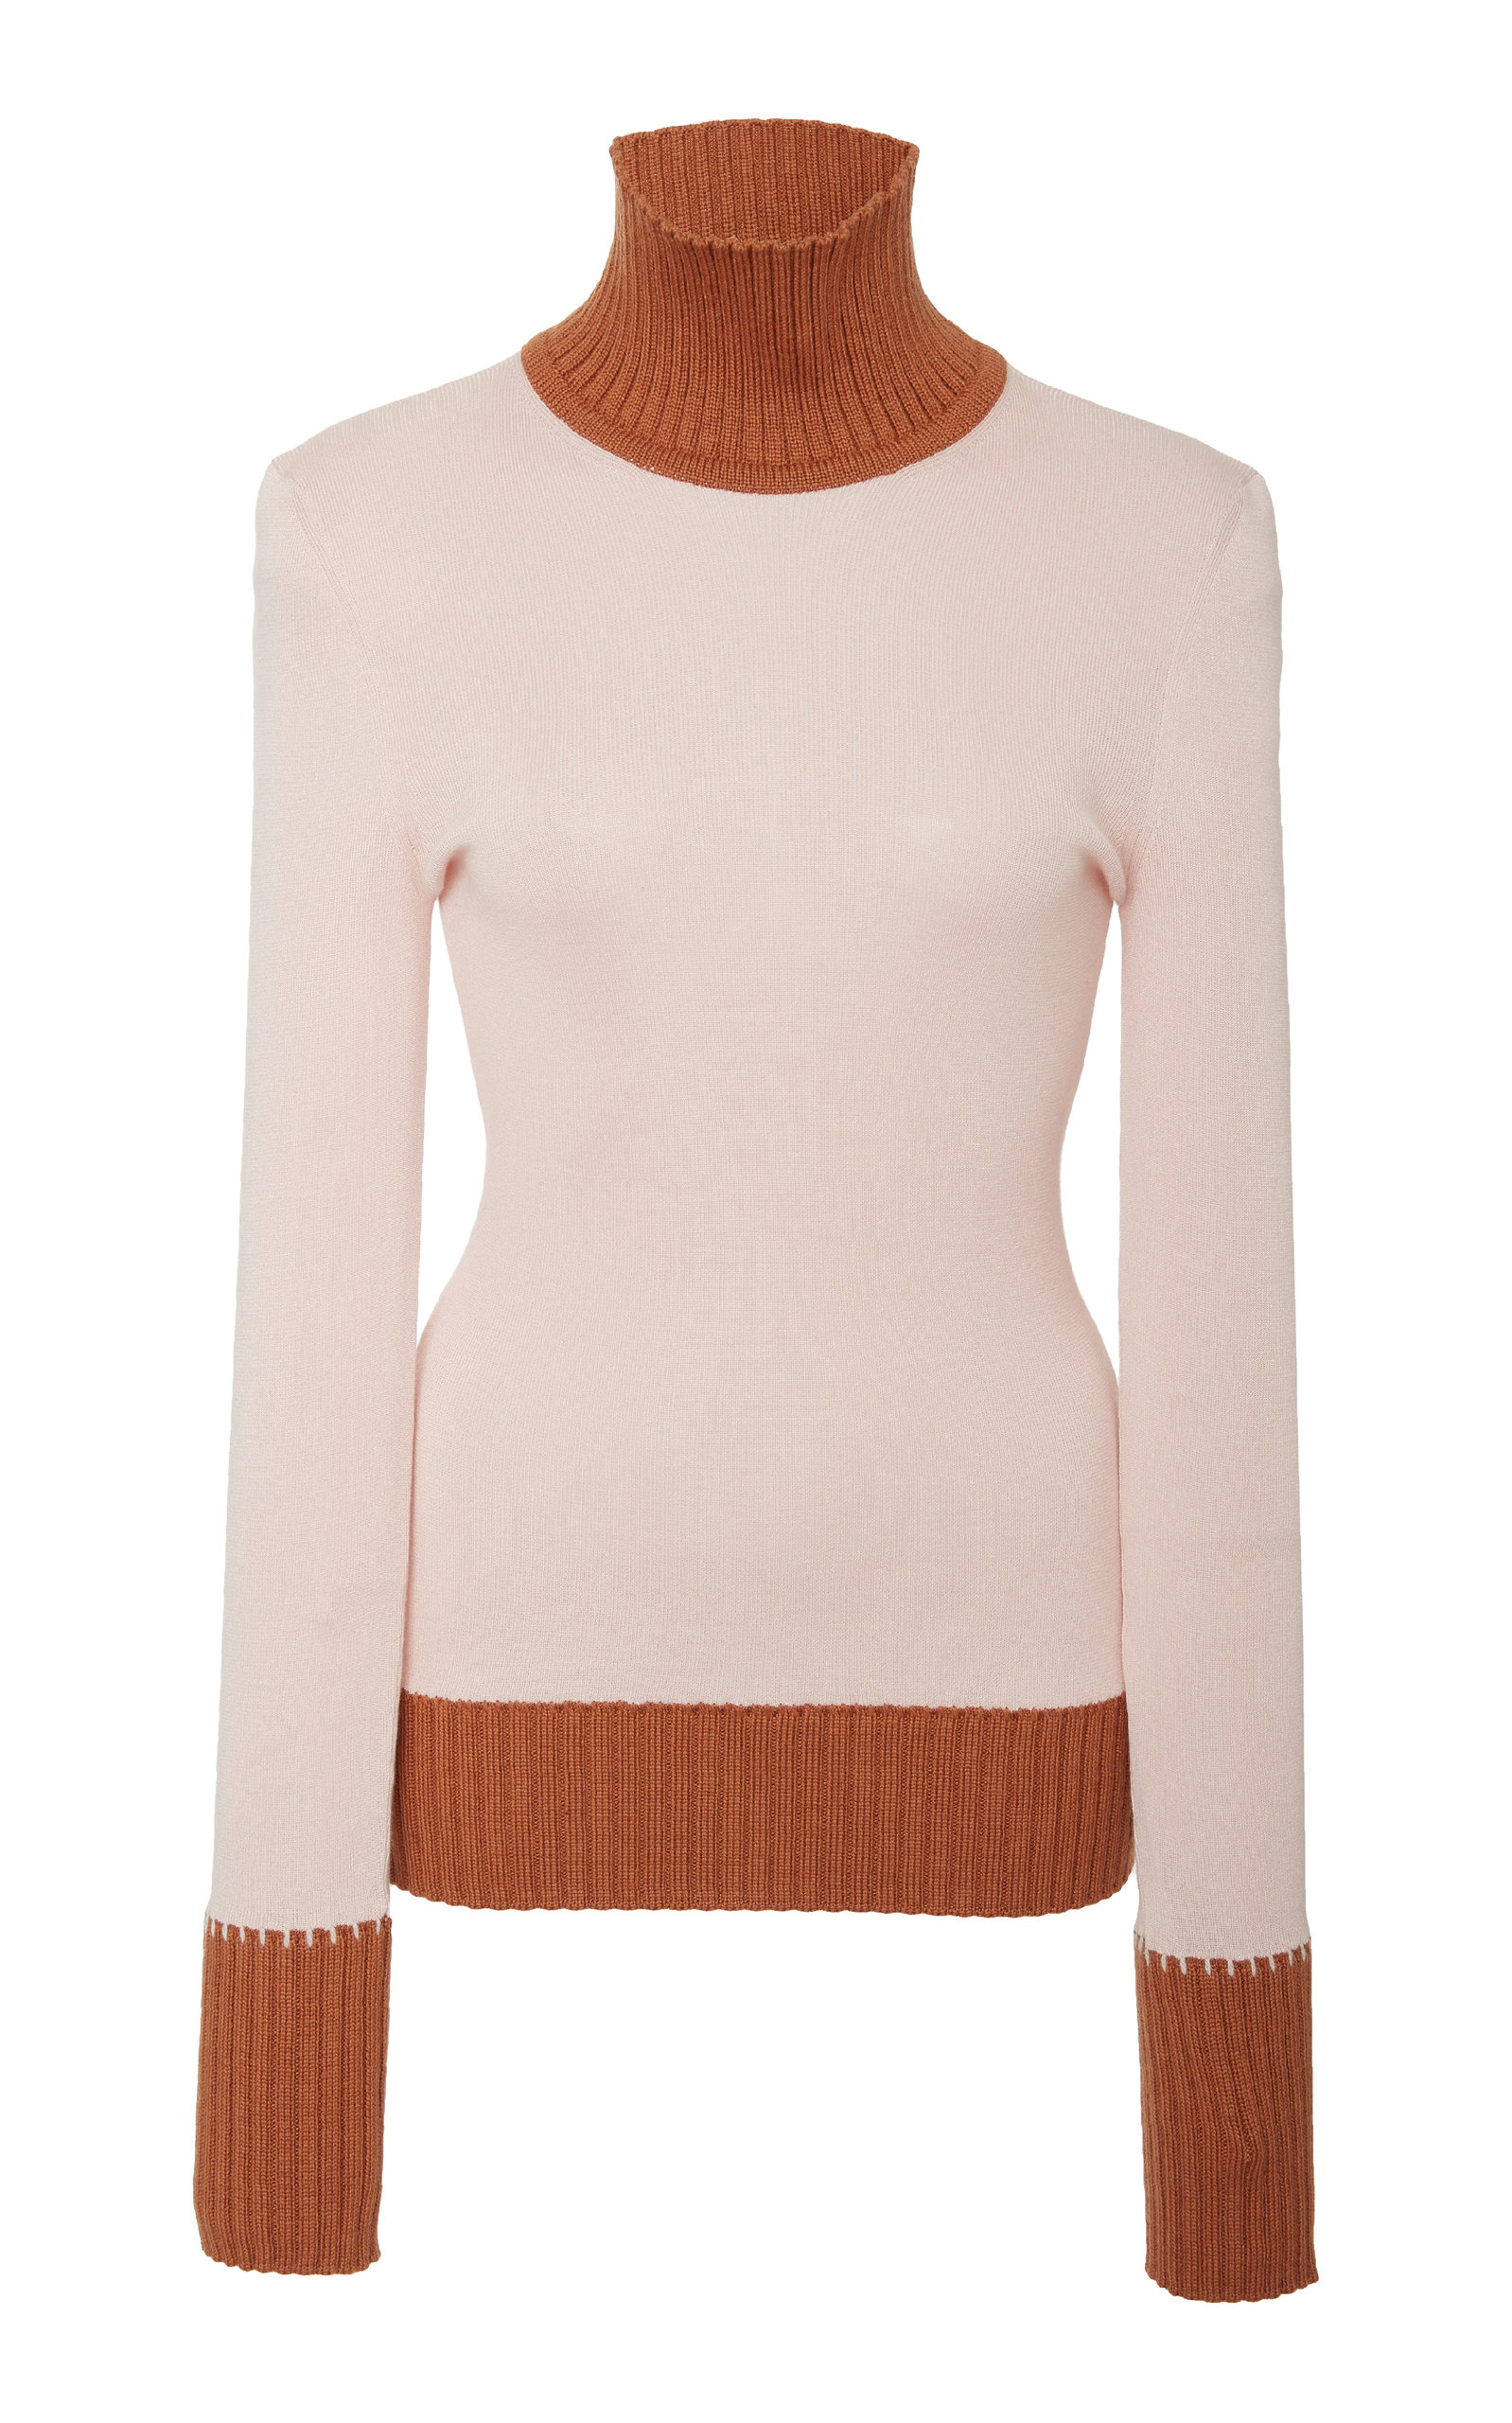 Two-Tone Ribbed Wool-Blend Turtleneck Sweater in Pink